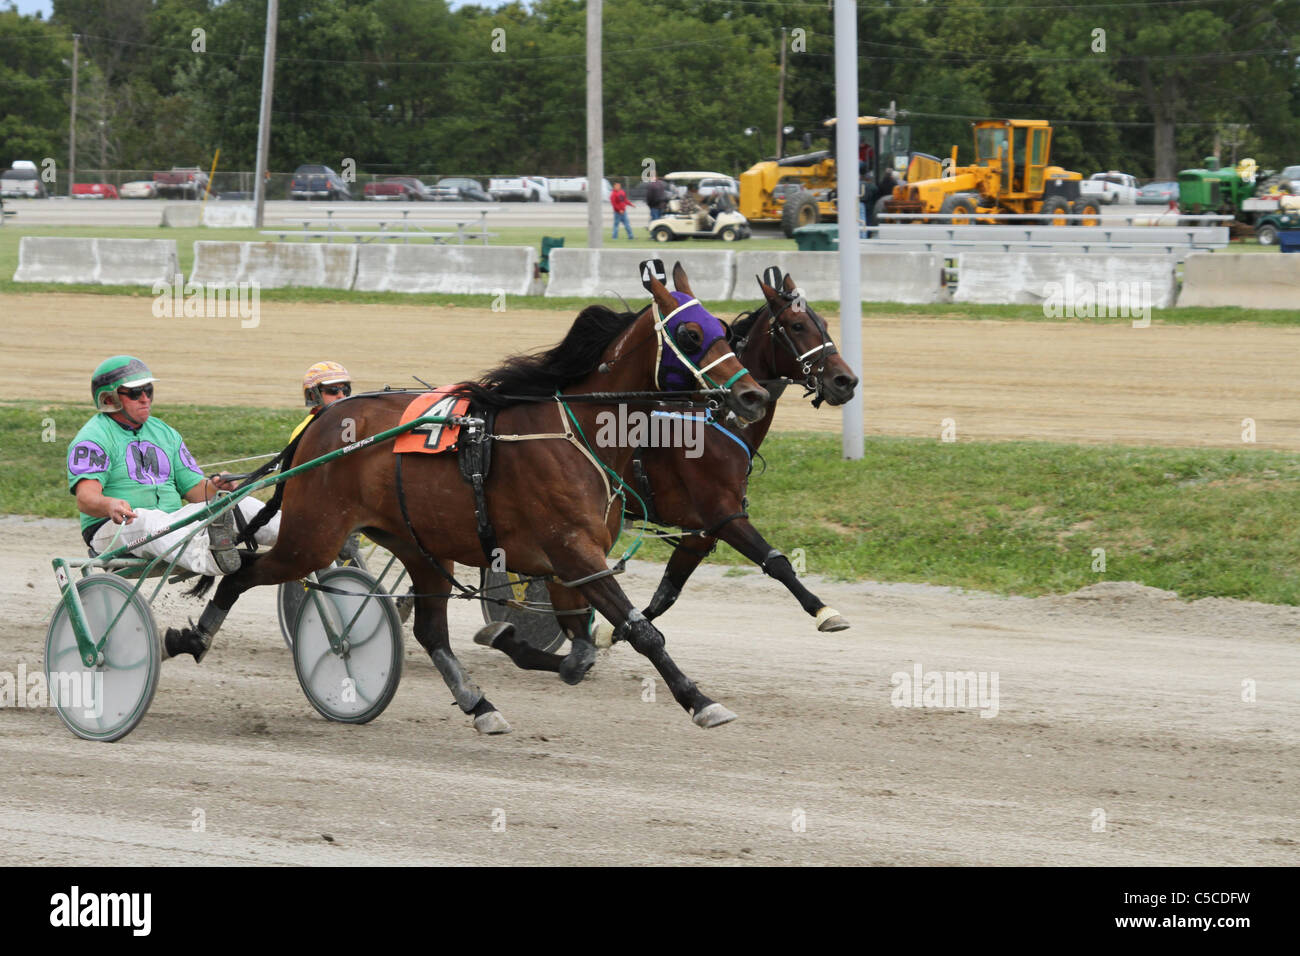 Harness Racing. Horse Racing. Canfield Fair. Mahoning County Fair. Canfield, Ohio, USA. Horses are in step. - Stock Image